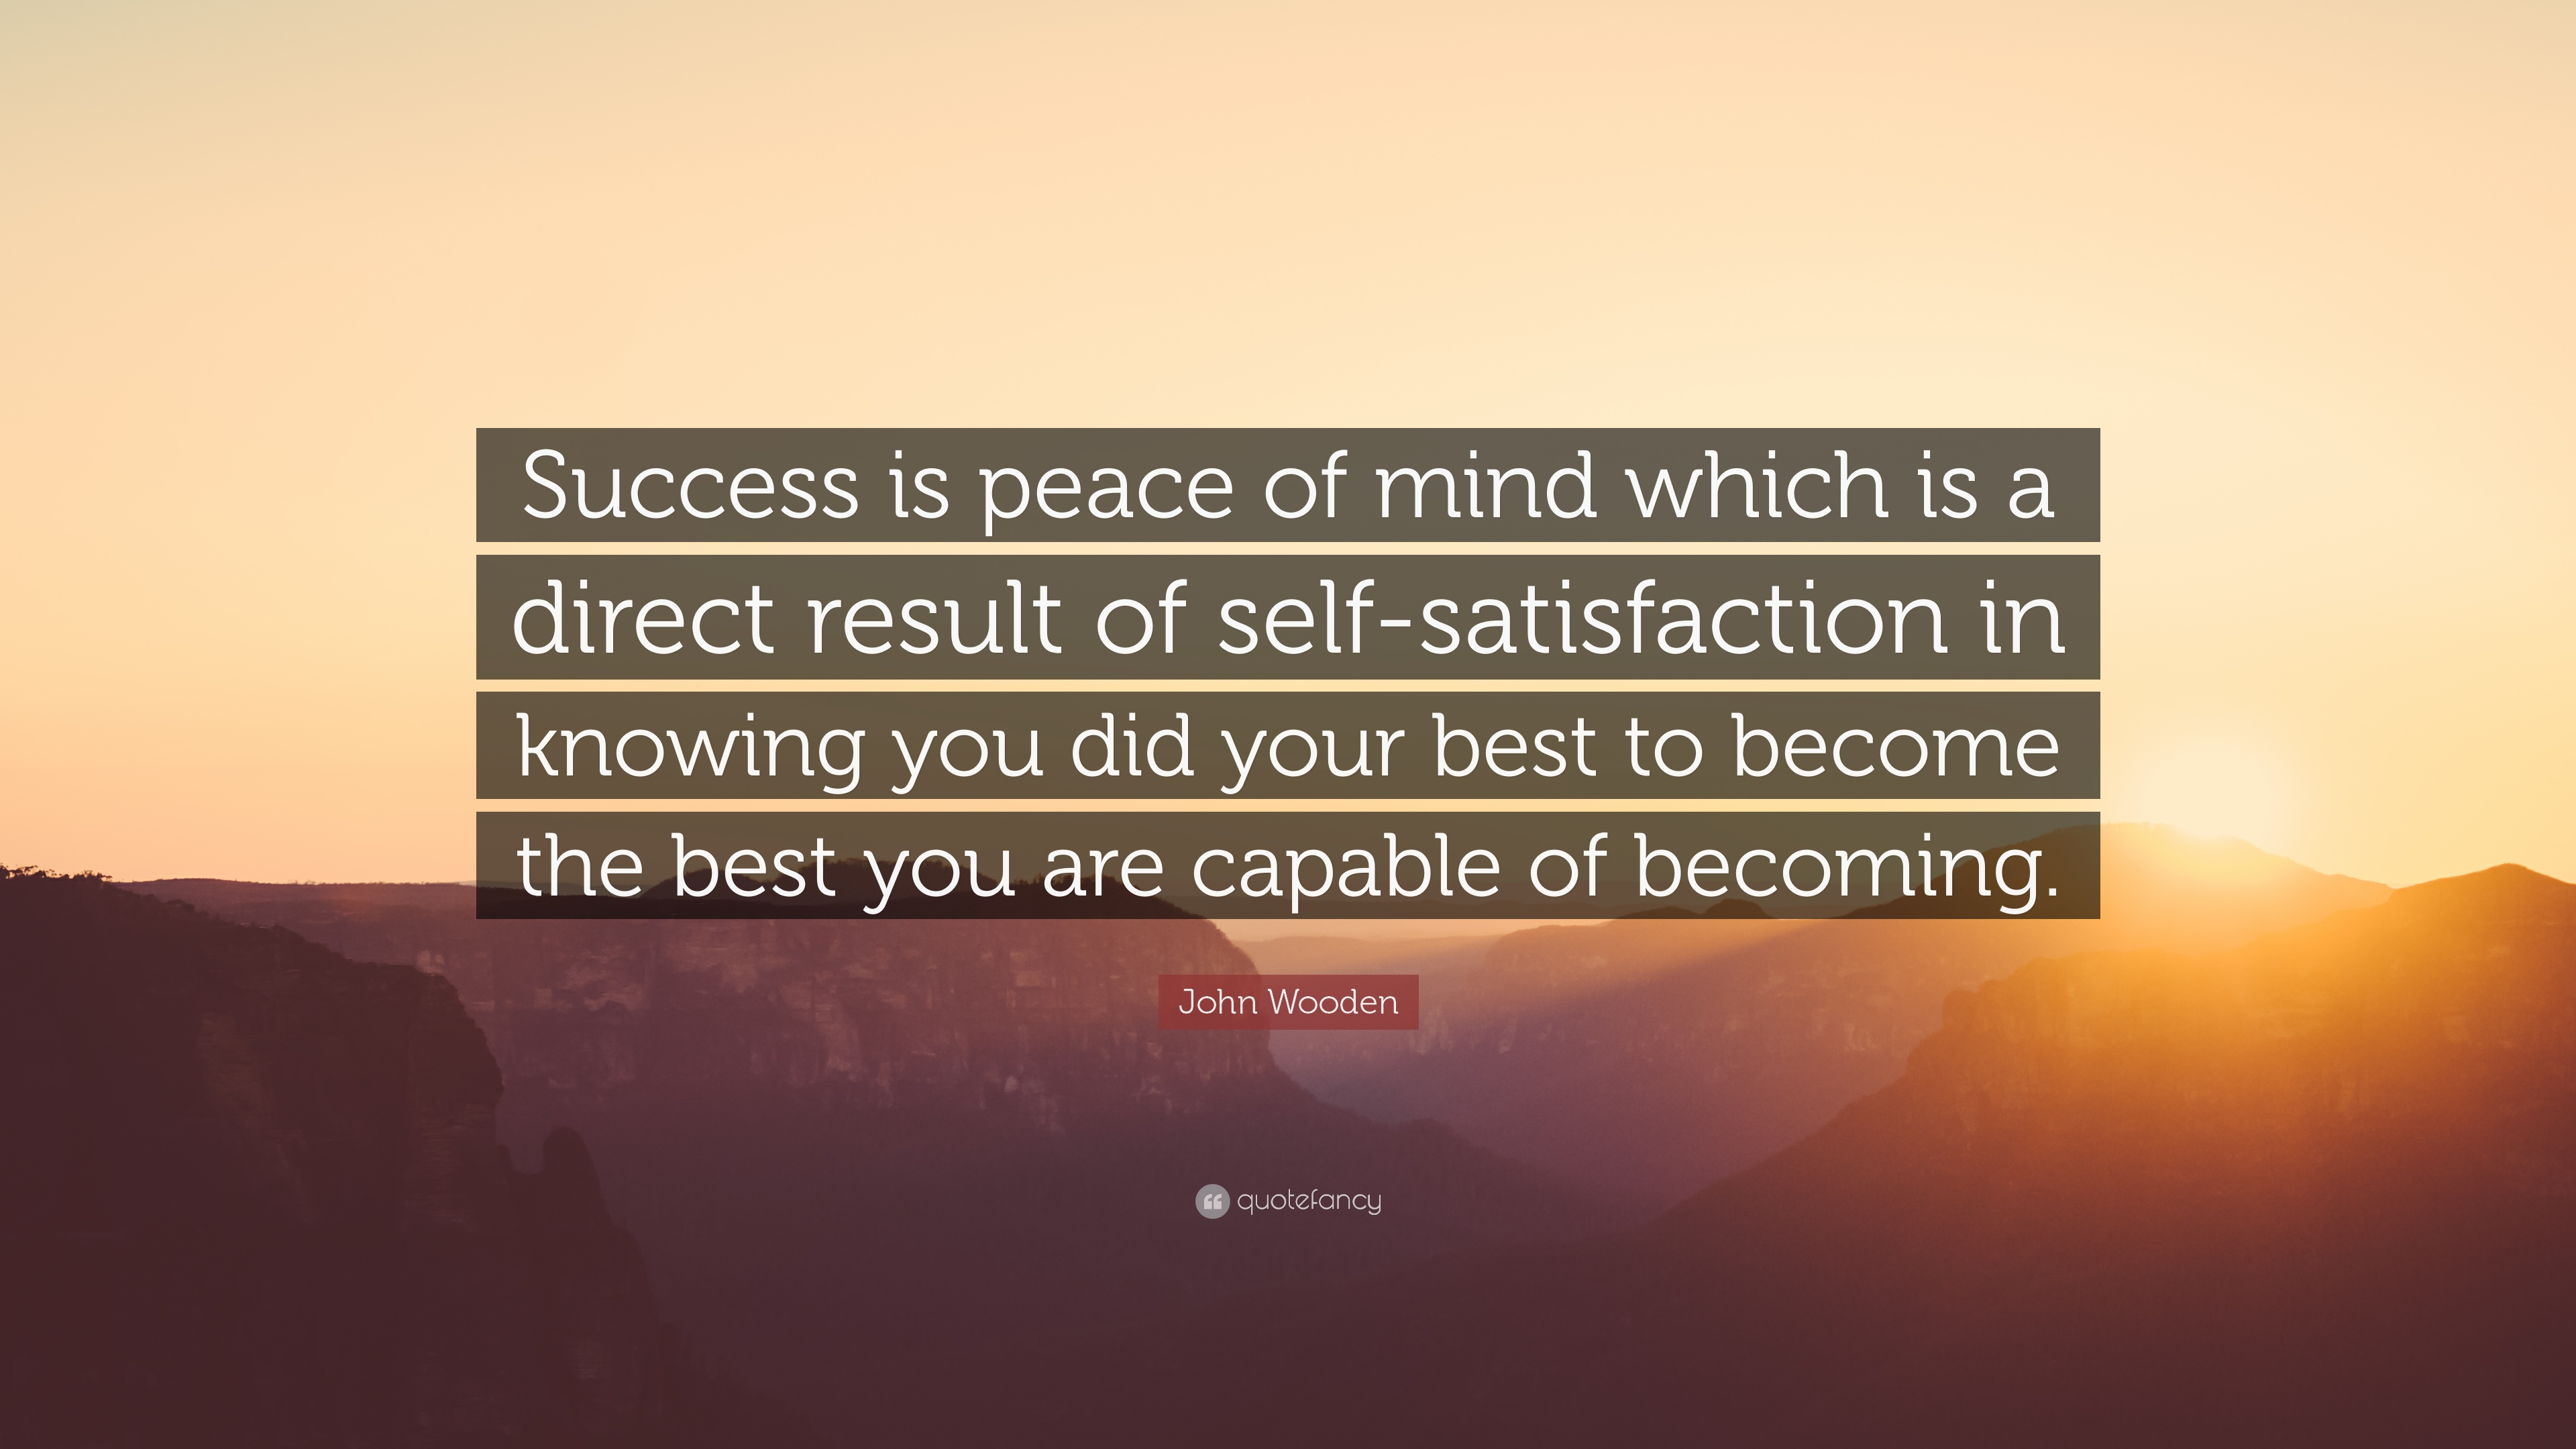 Theodore Roosevelt Quotes Wallpaper John Wooden Quote Success Is Peace Of Mind Which Is A